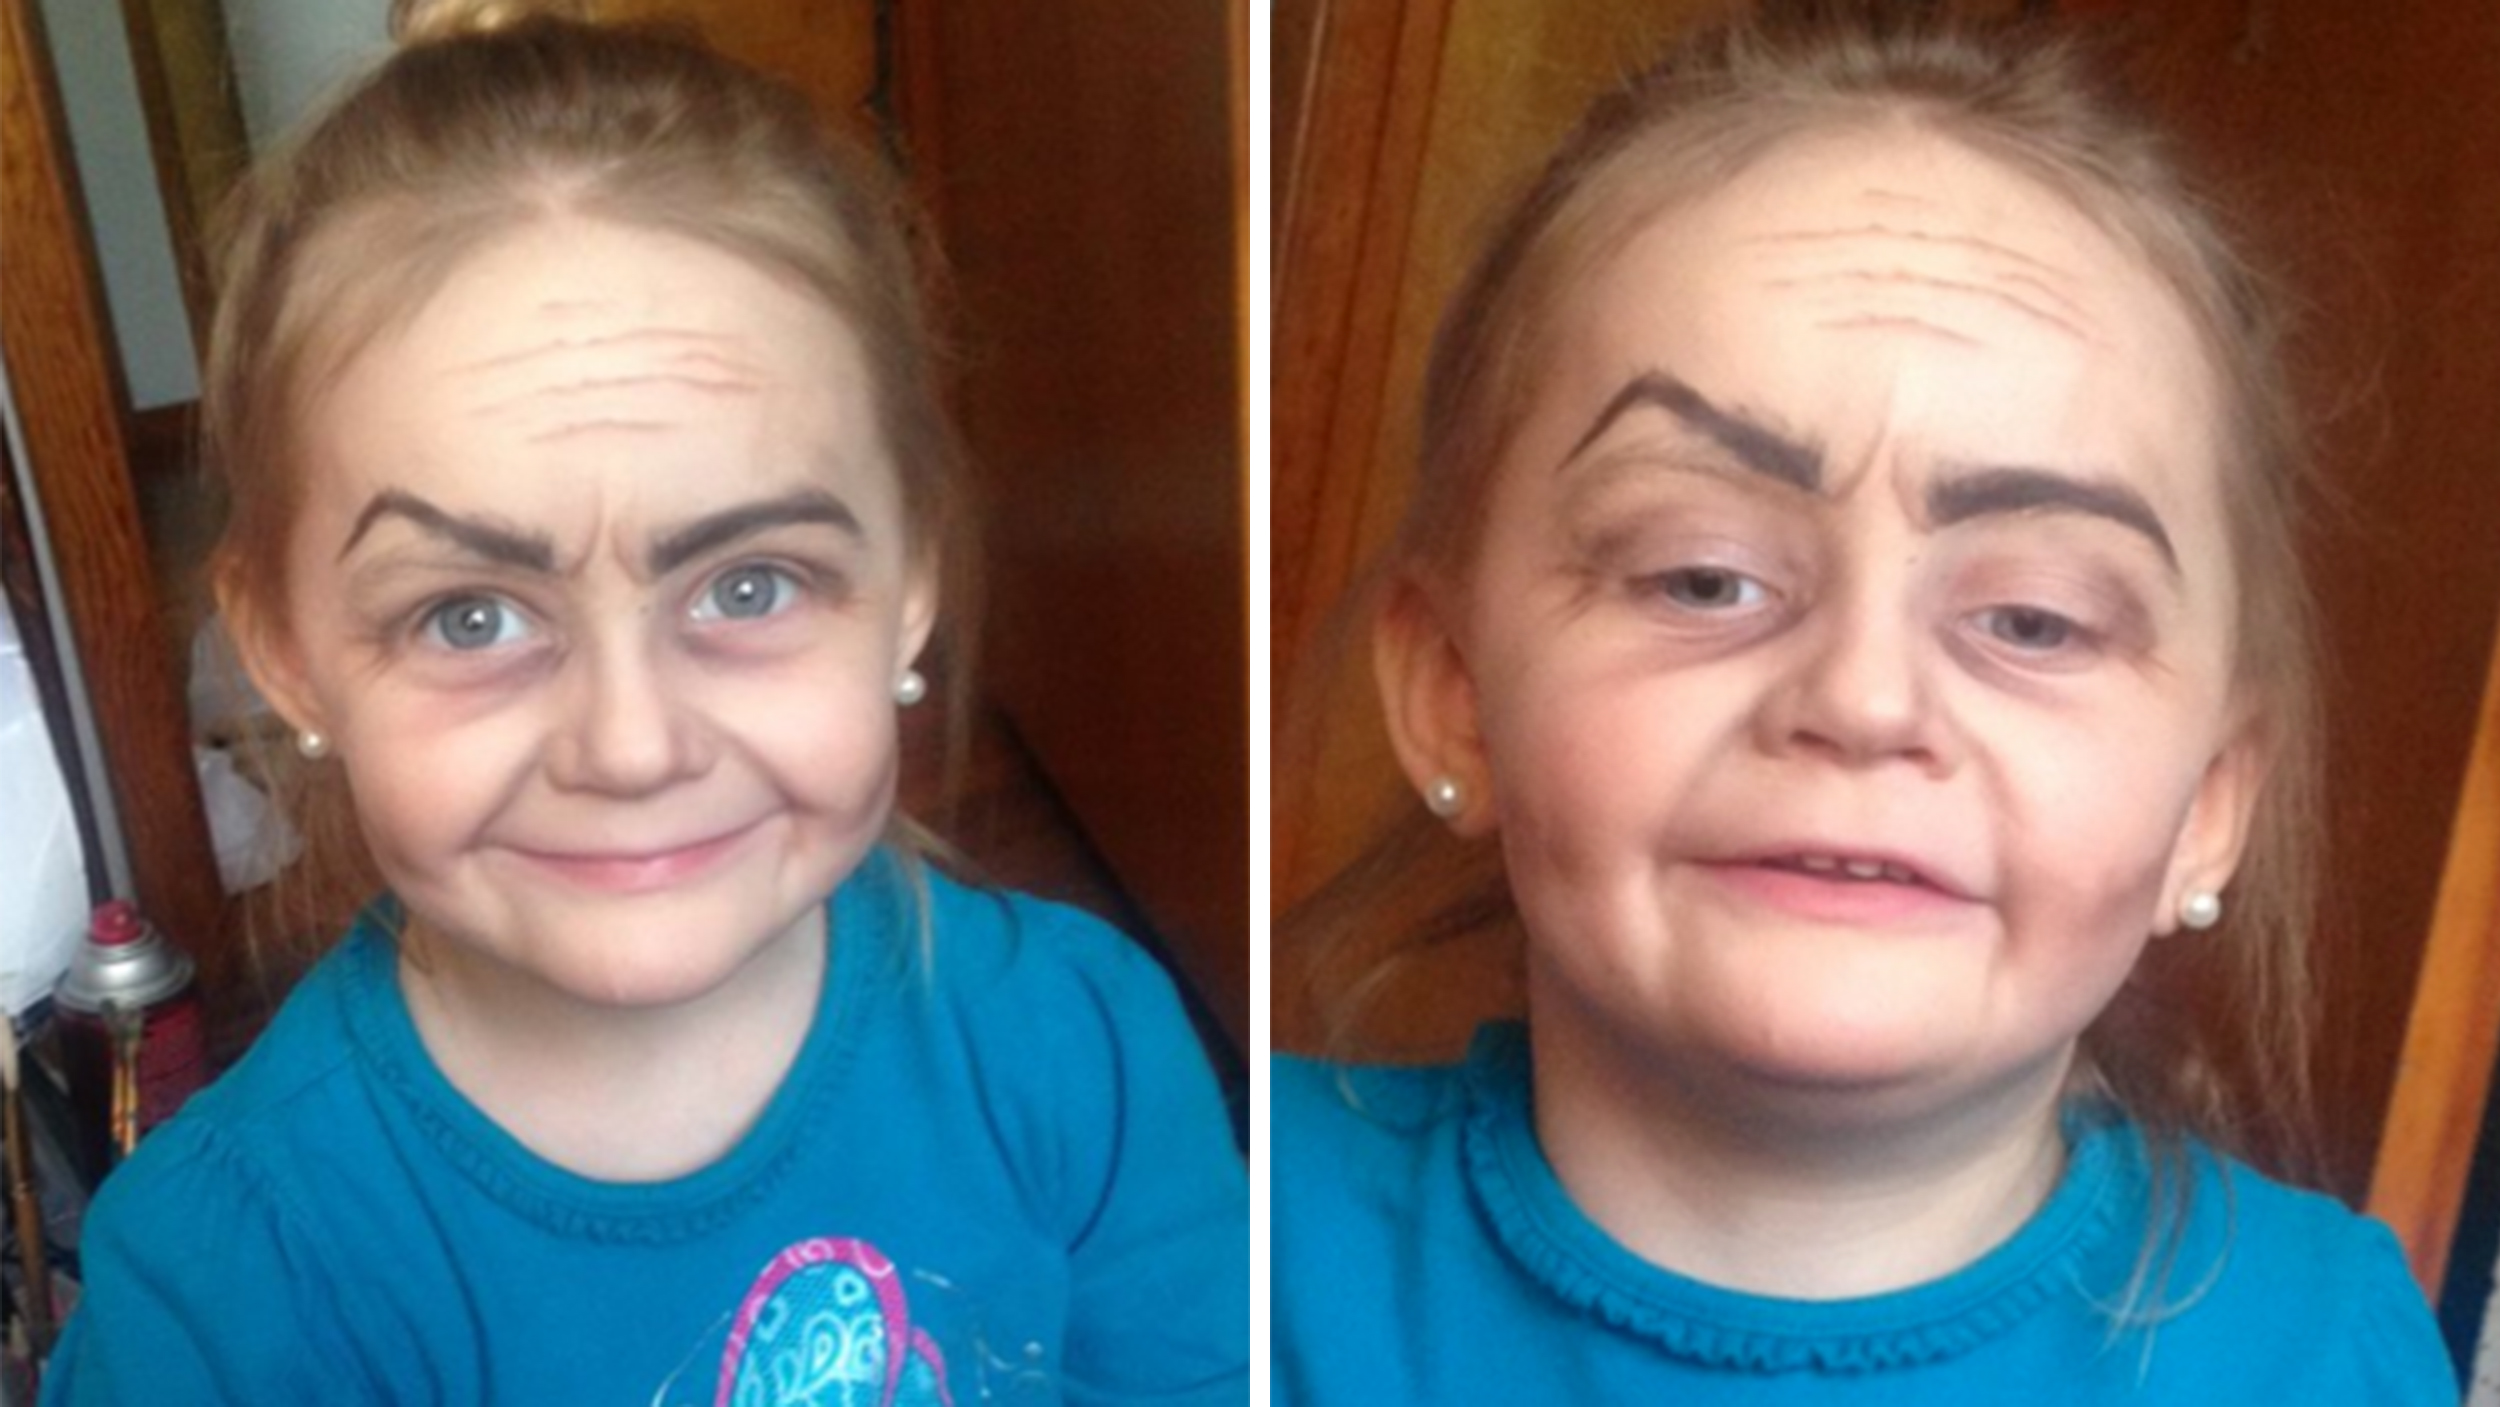 Fixer Upper Toddler Turned Into Little Old Lady By Makeup Wielding